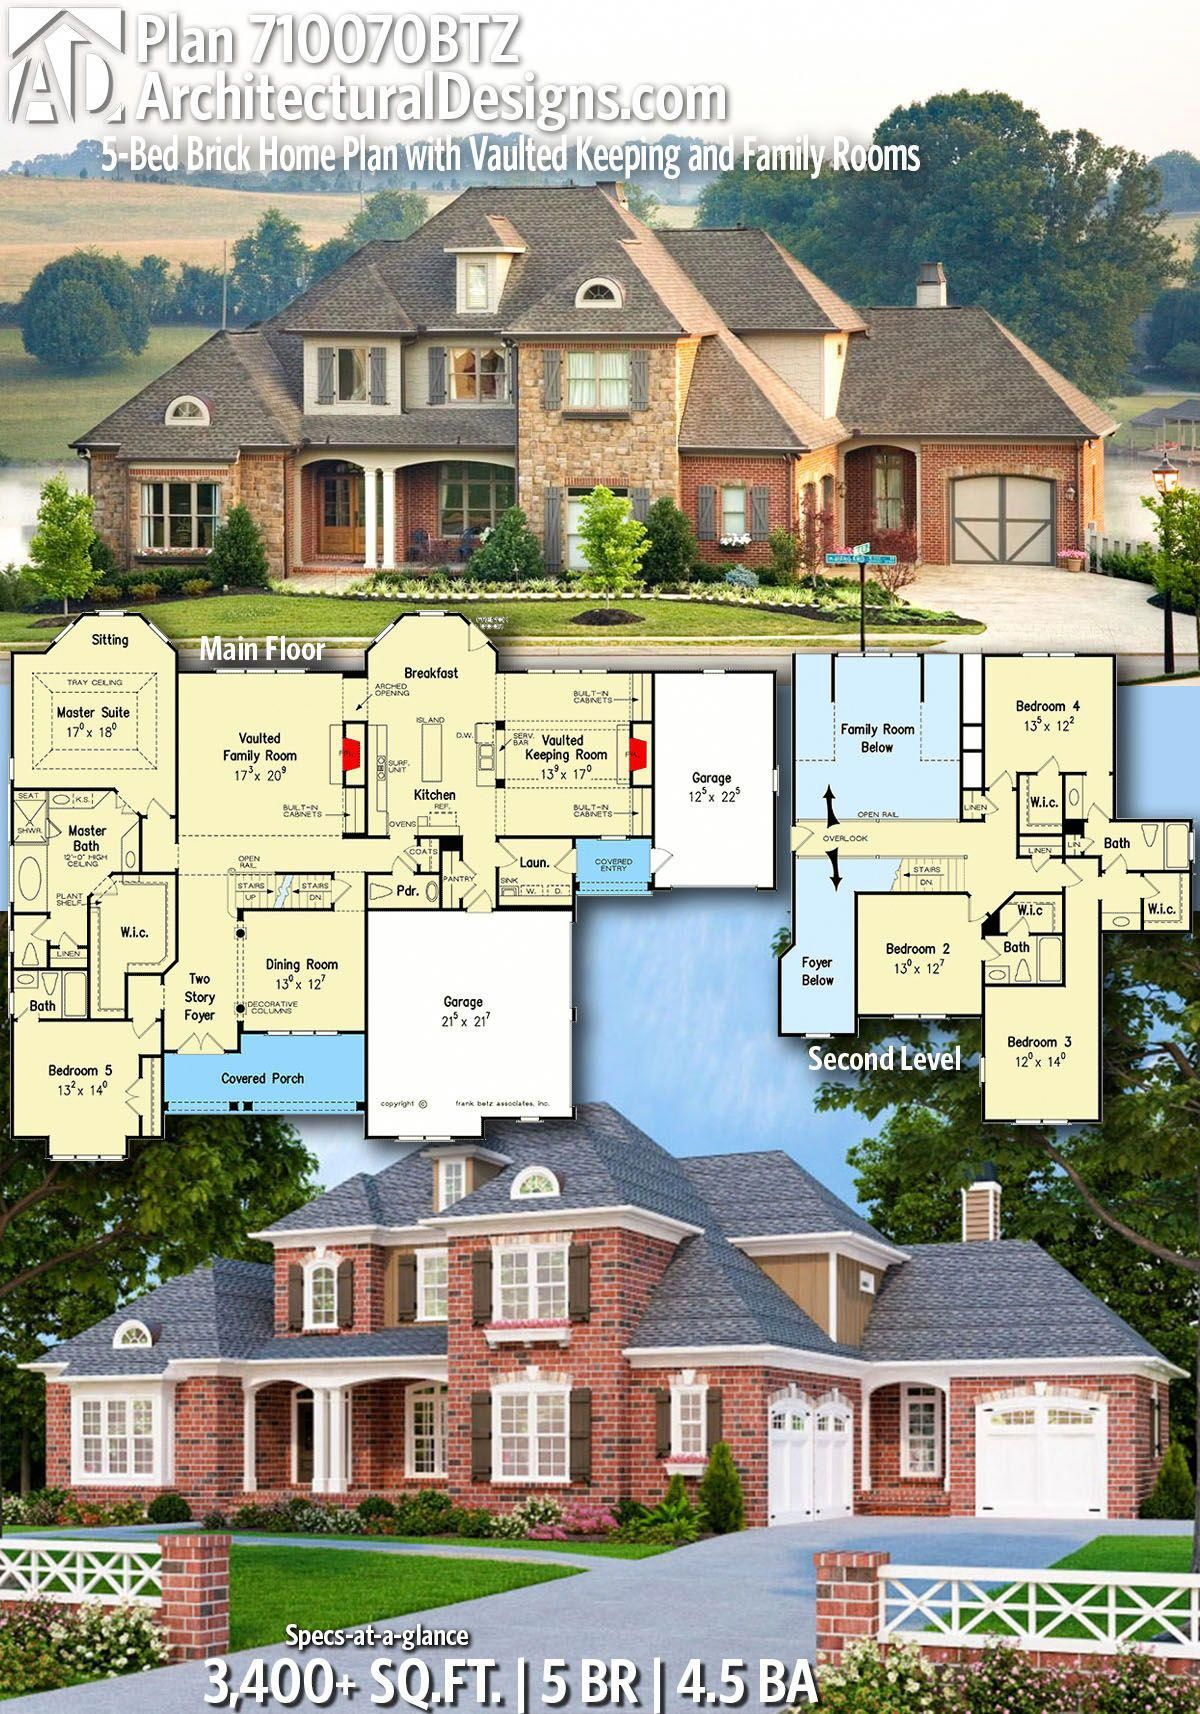 Begin Using These Interior Desing Ideas To Enhance Your House And Give It New Life Home Decorating Is Entertain House Plans Dream House Plans House Blueprints